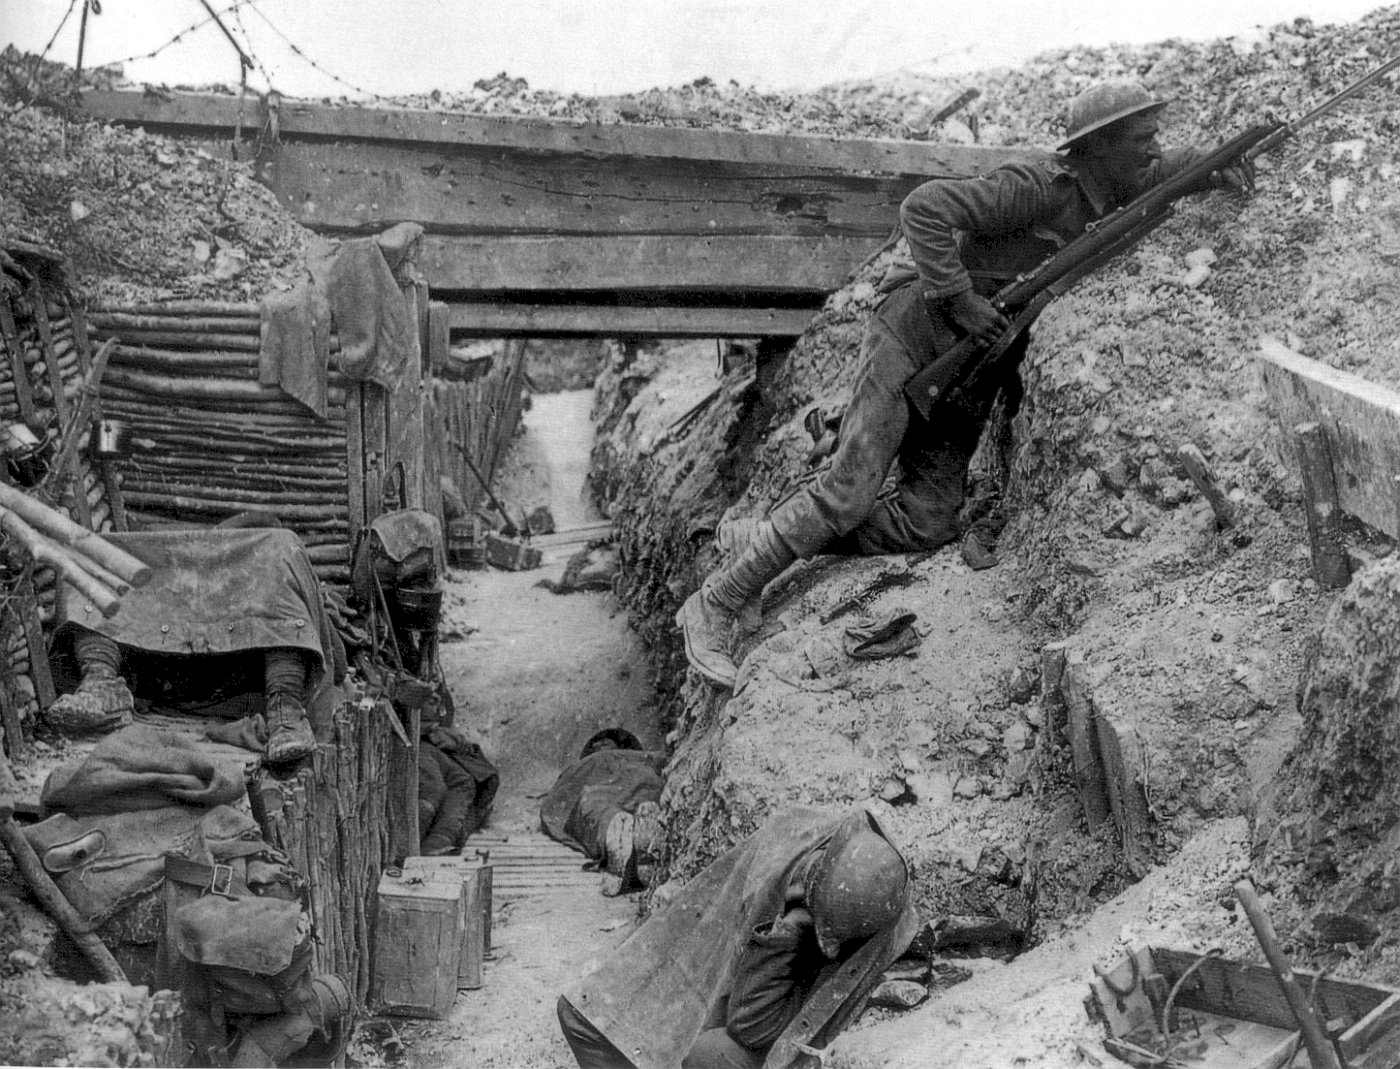 A British trench at the Somme, 1916